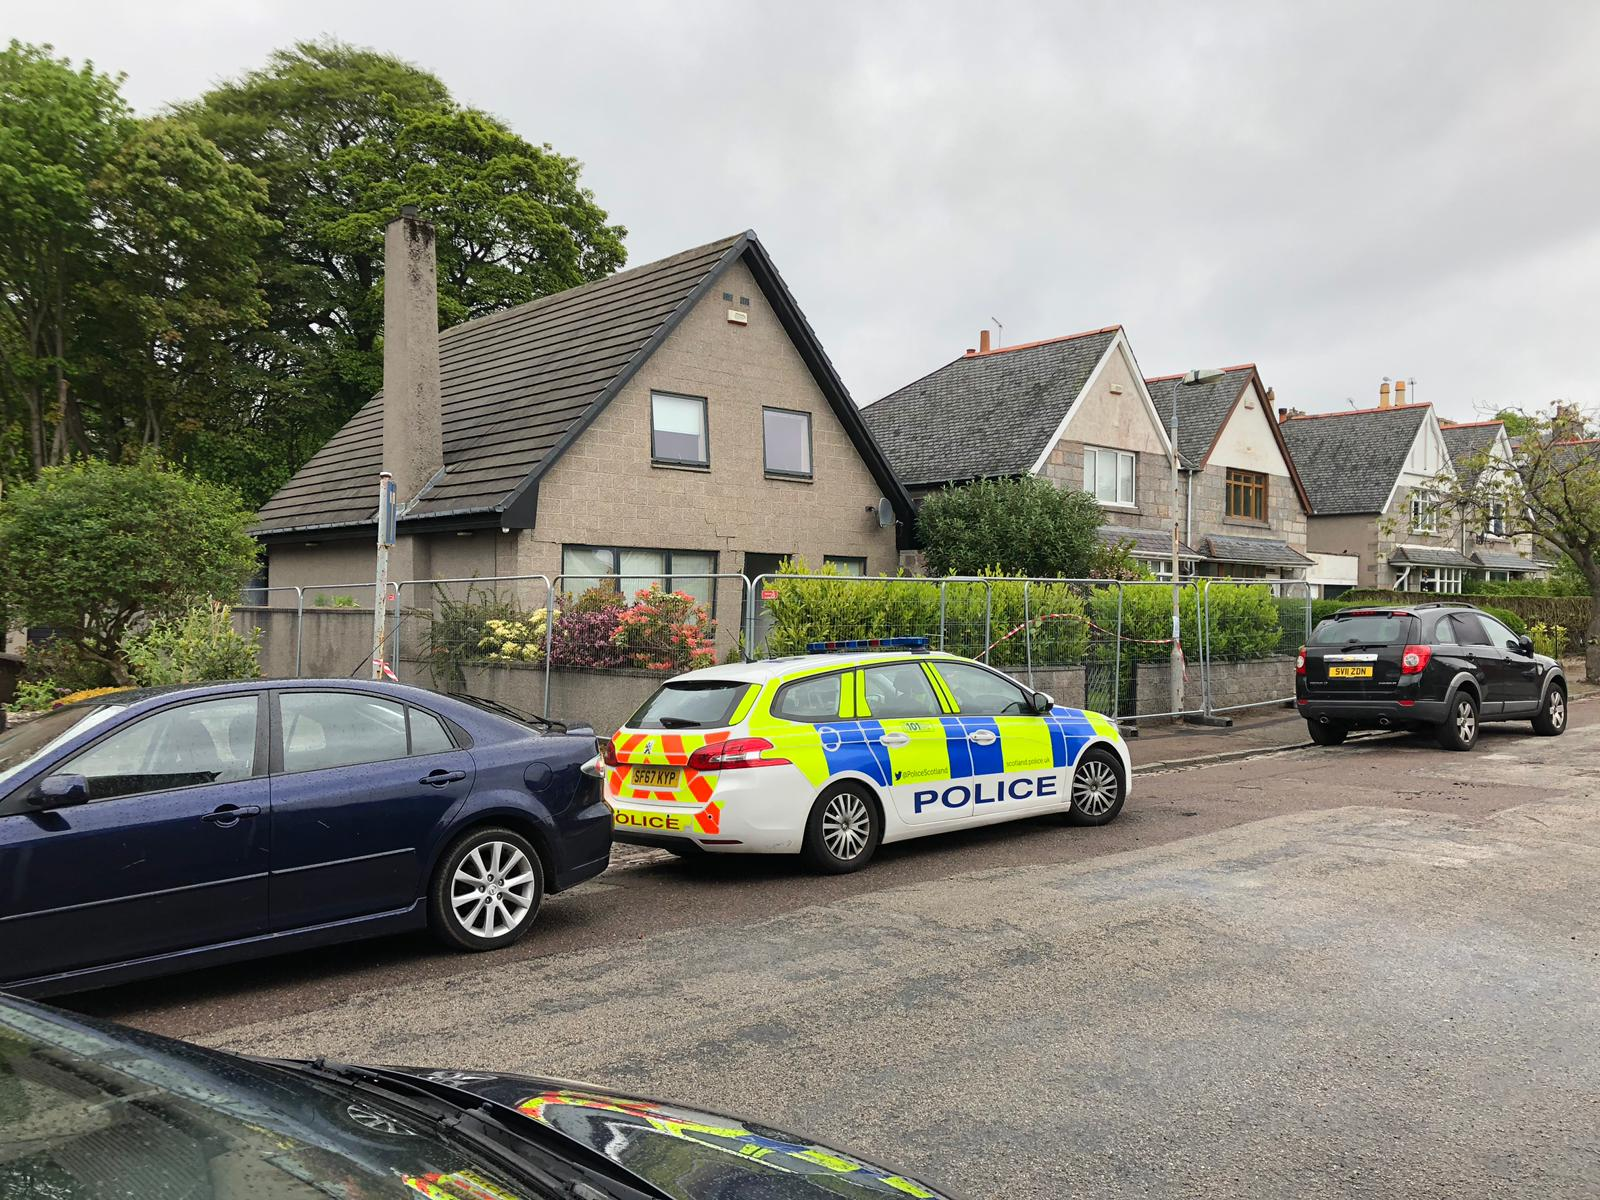 Police at the scene of the incident on Sycamore Place in Aberdeen